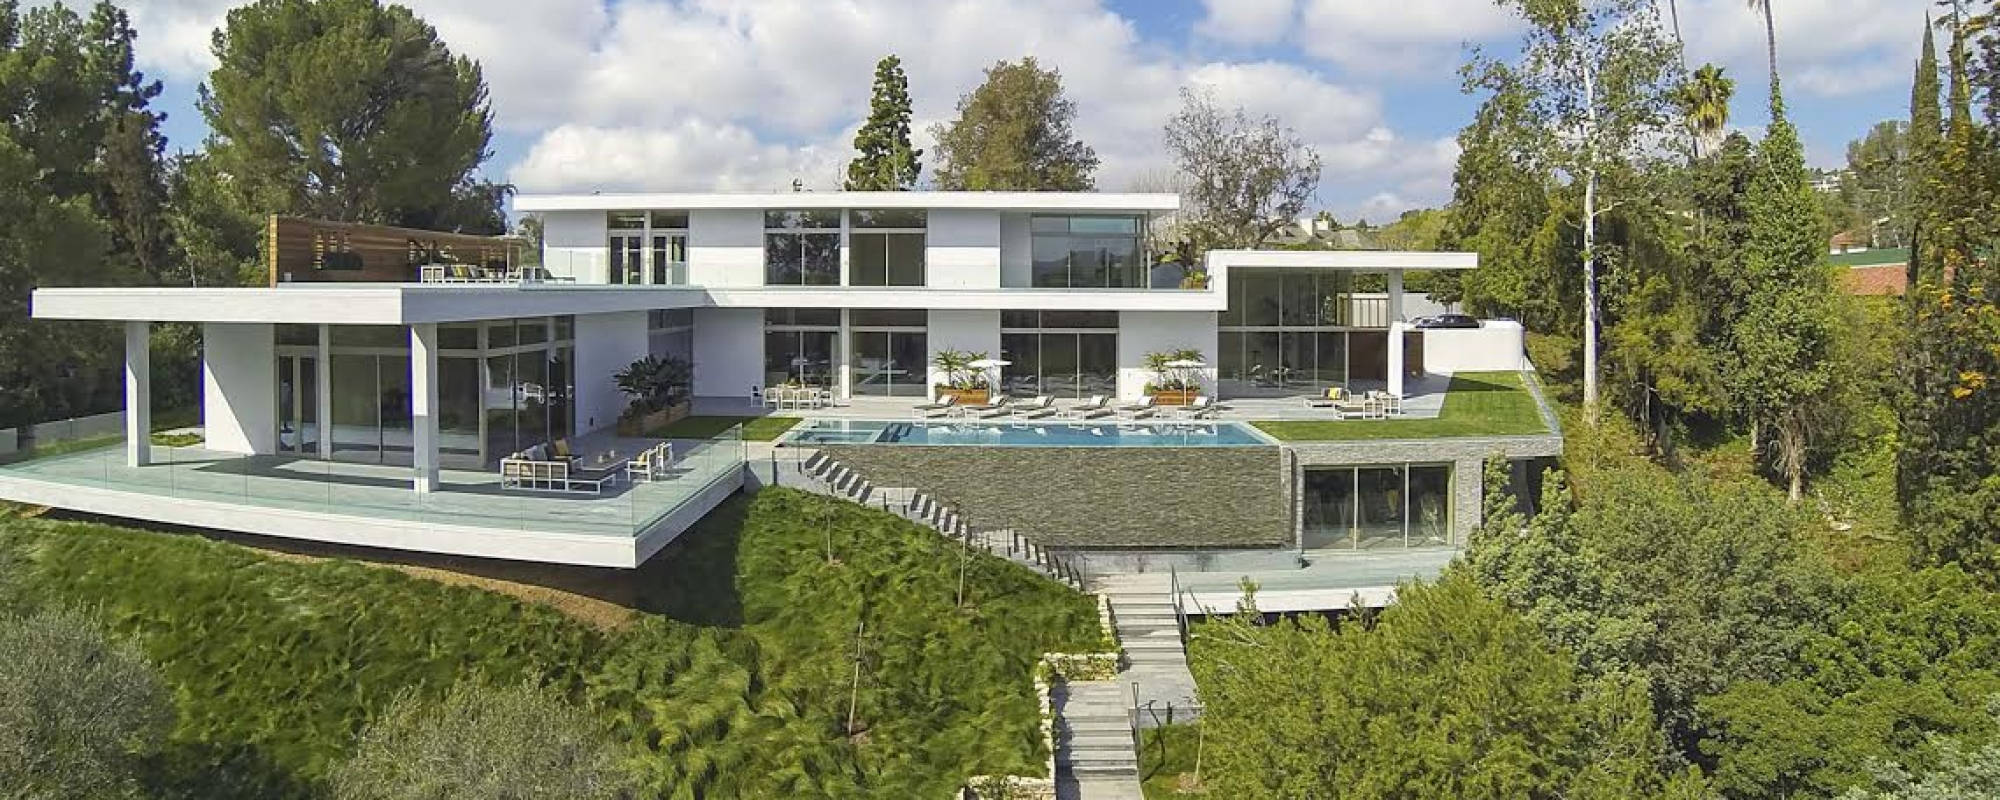 Holmby Hills